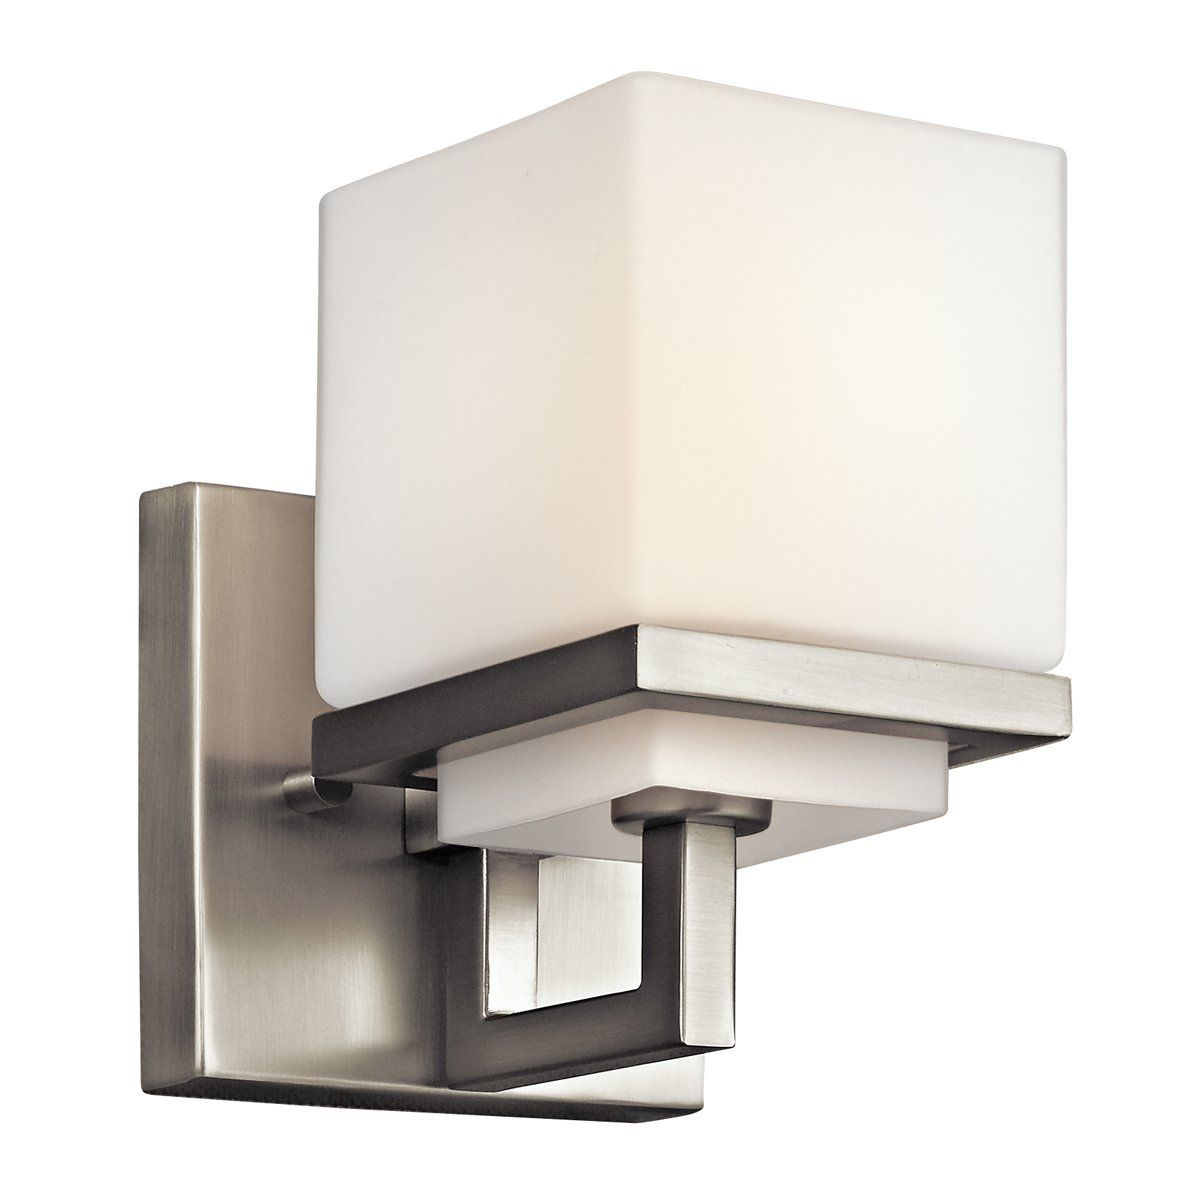 Kichler 6162ni Structures 2 Light Bath Wall Mount In Brushed Nickel: Kichler Light Fixtures Bathroom